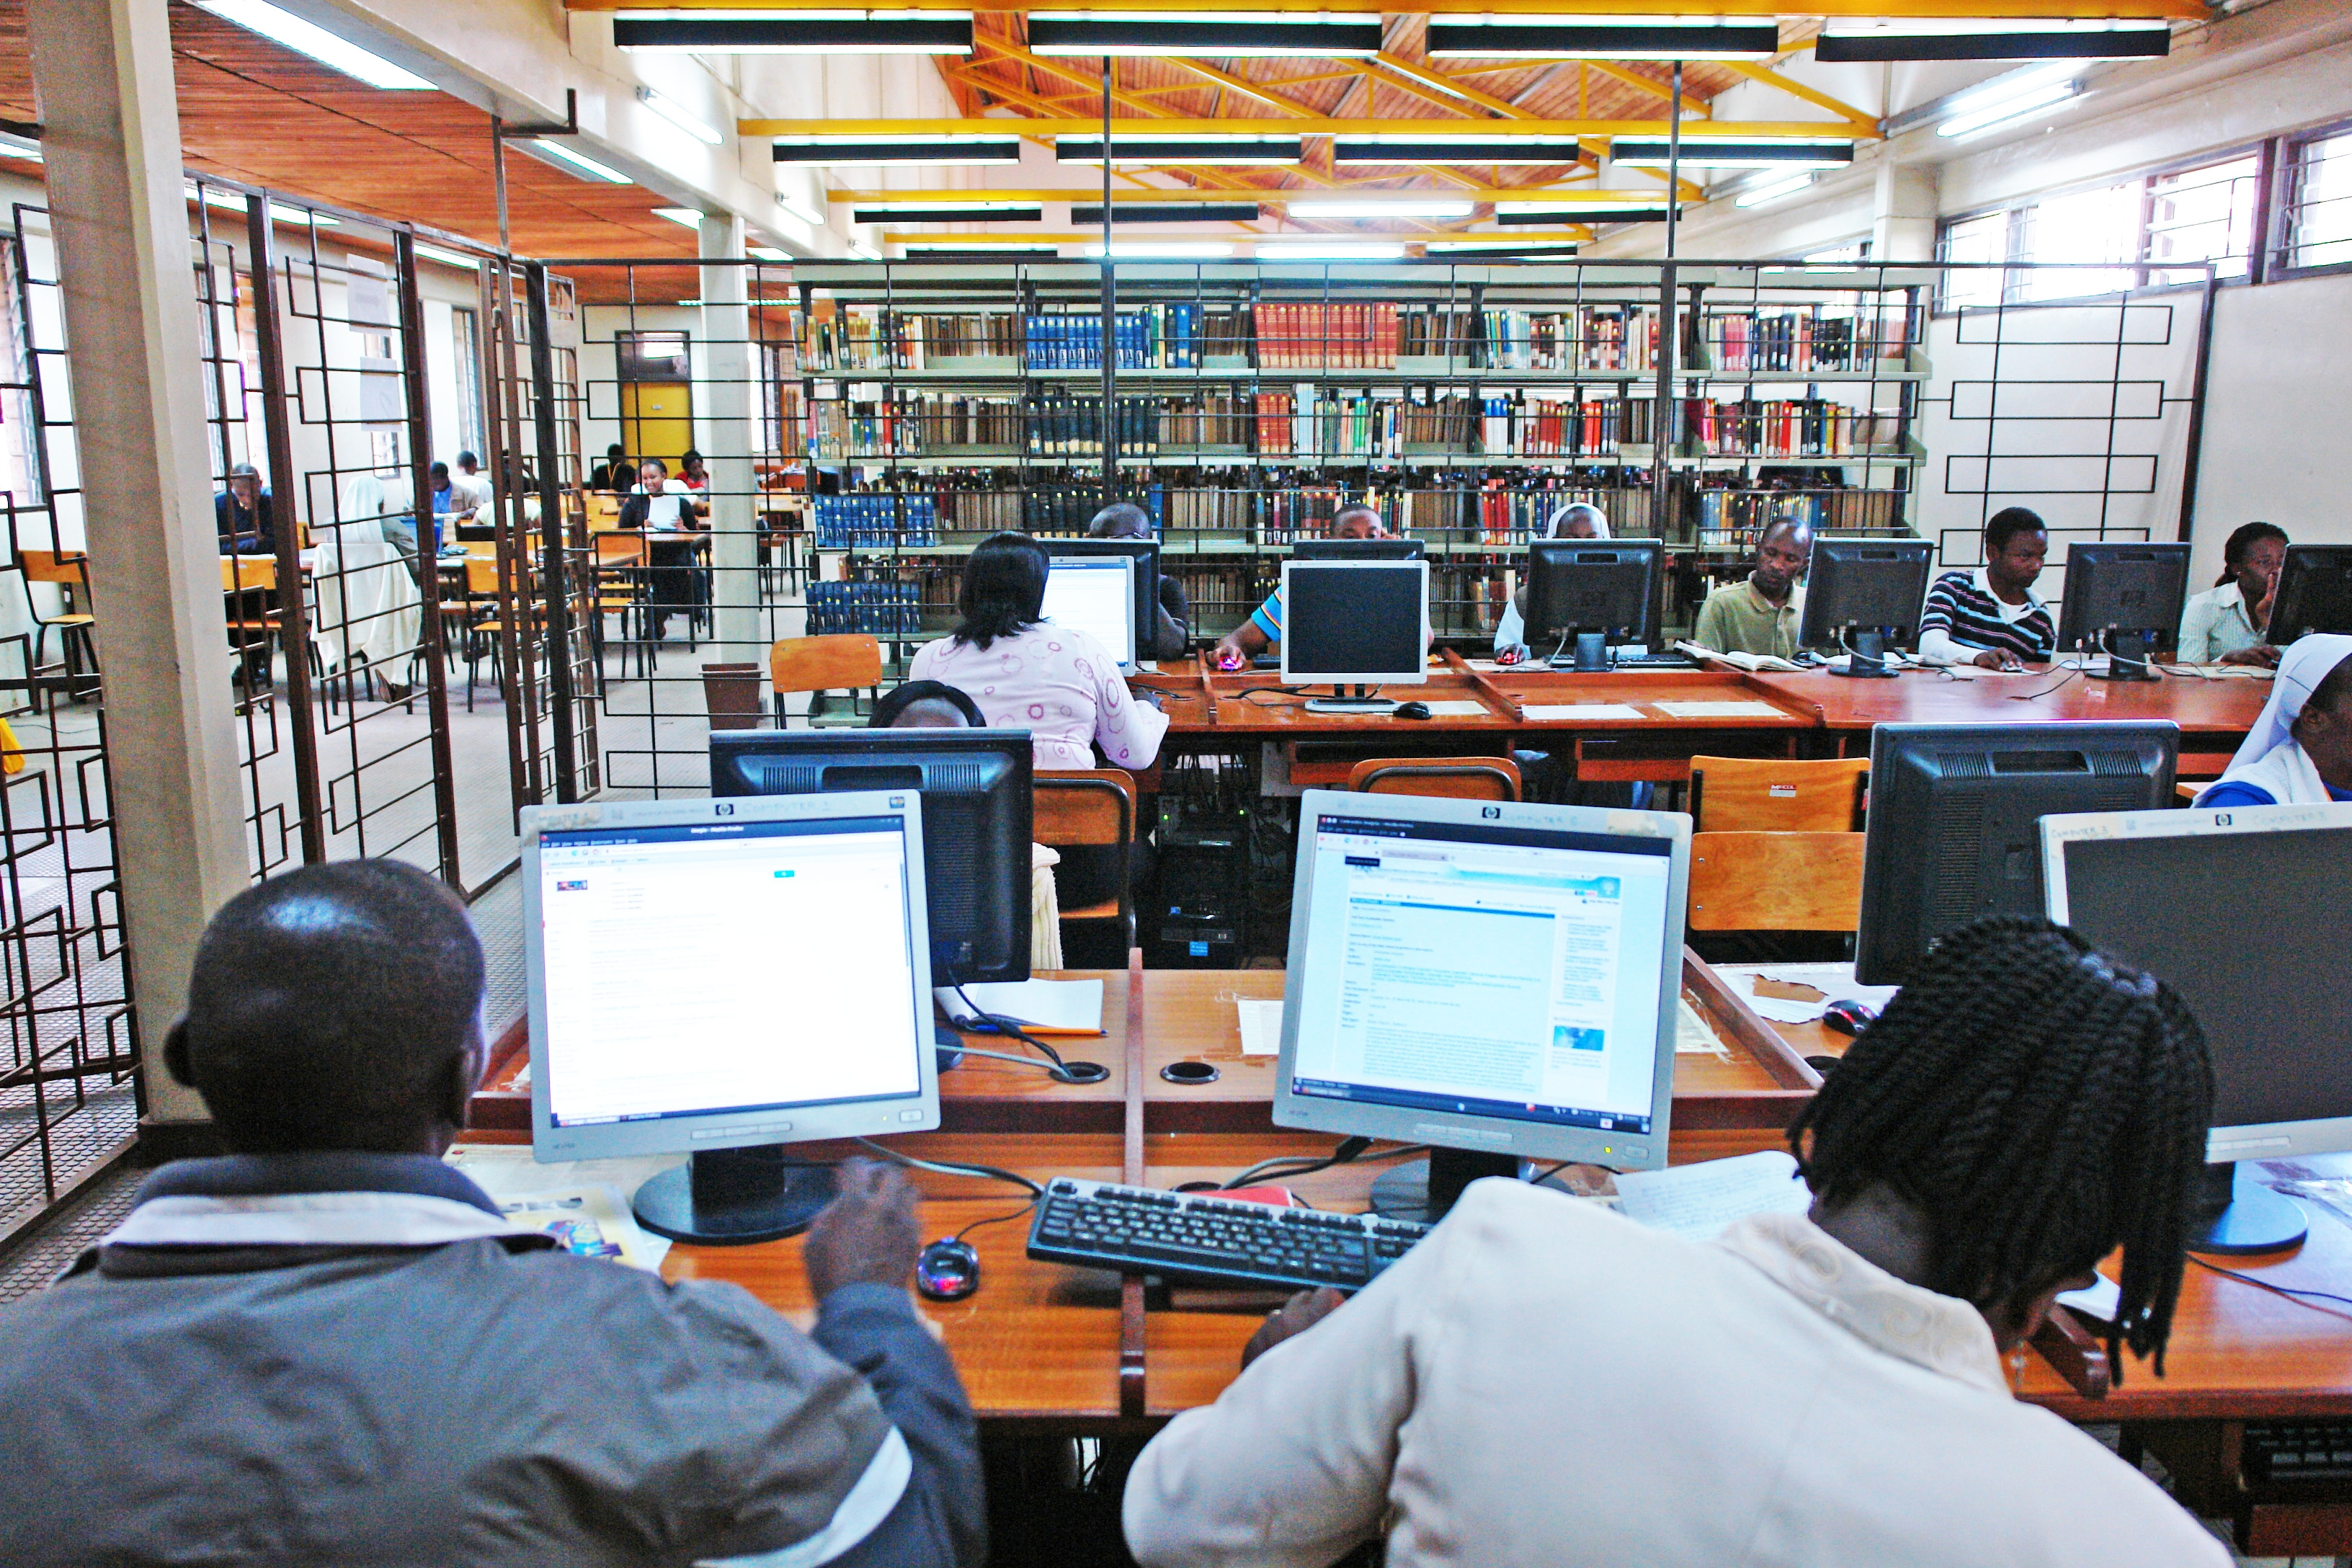 University library in Kenya.